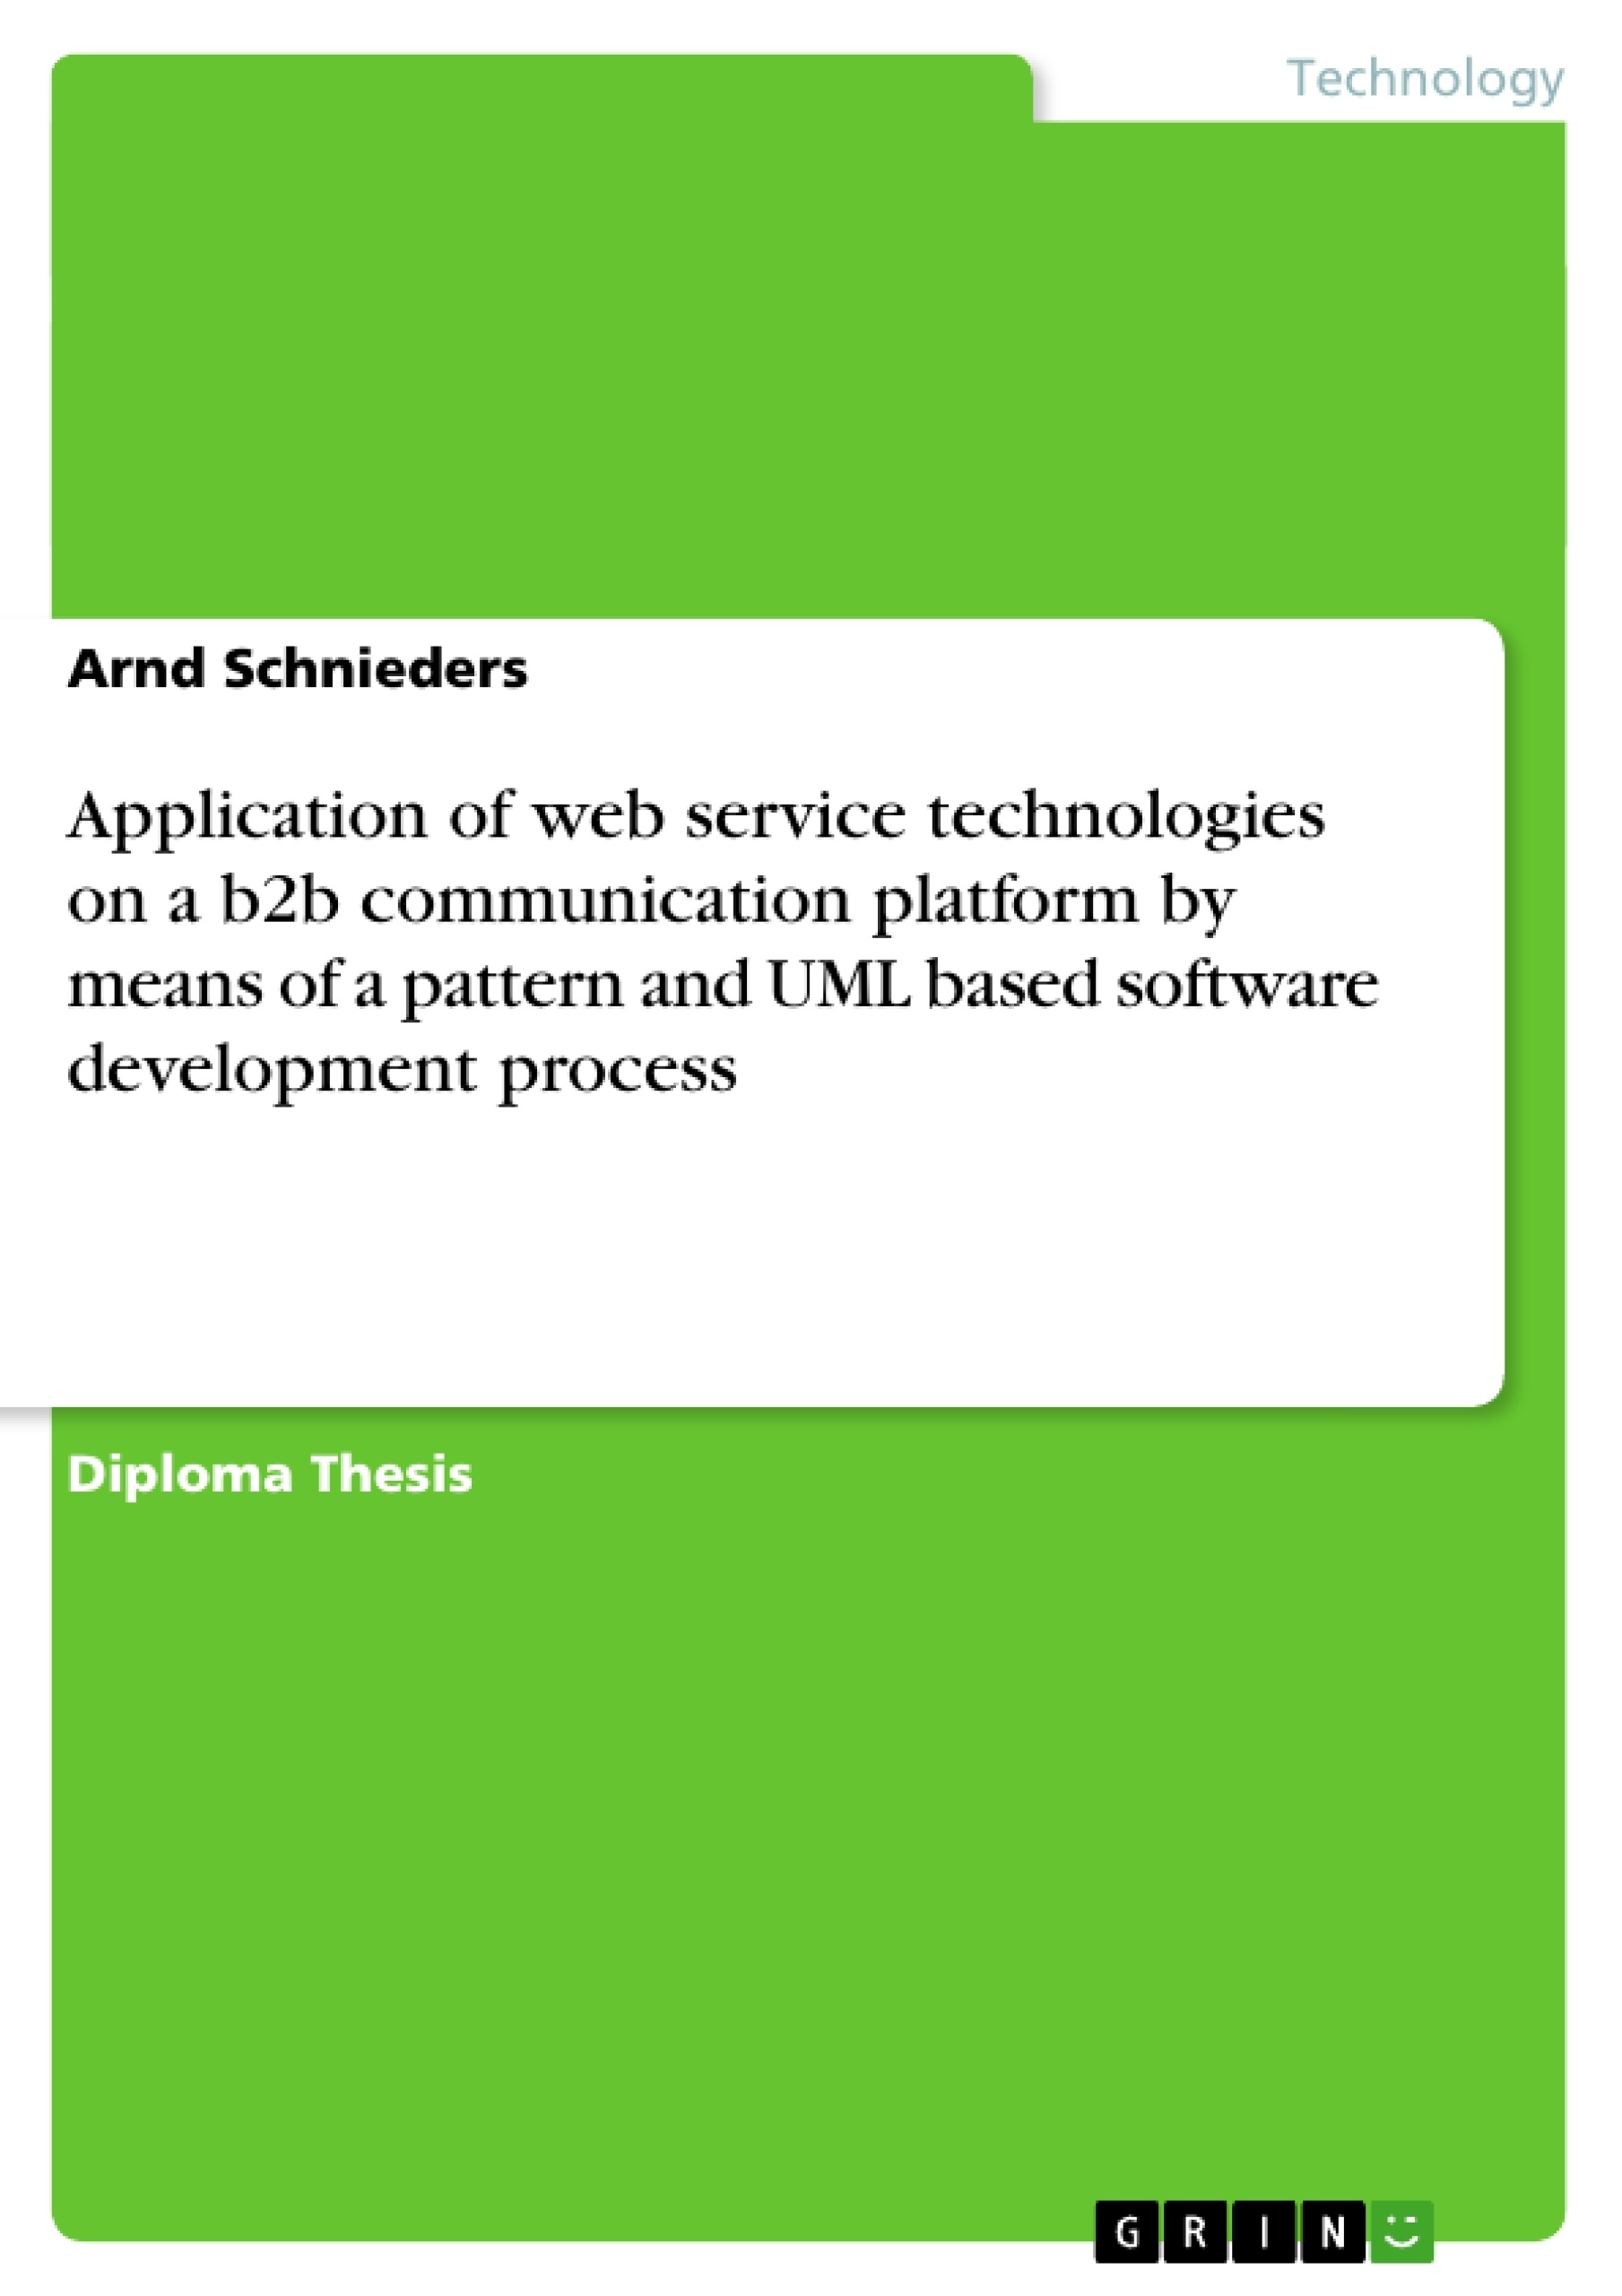 Title: Application of web service technologies on a b2b communication platform by means of a pattern and UML based software development process